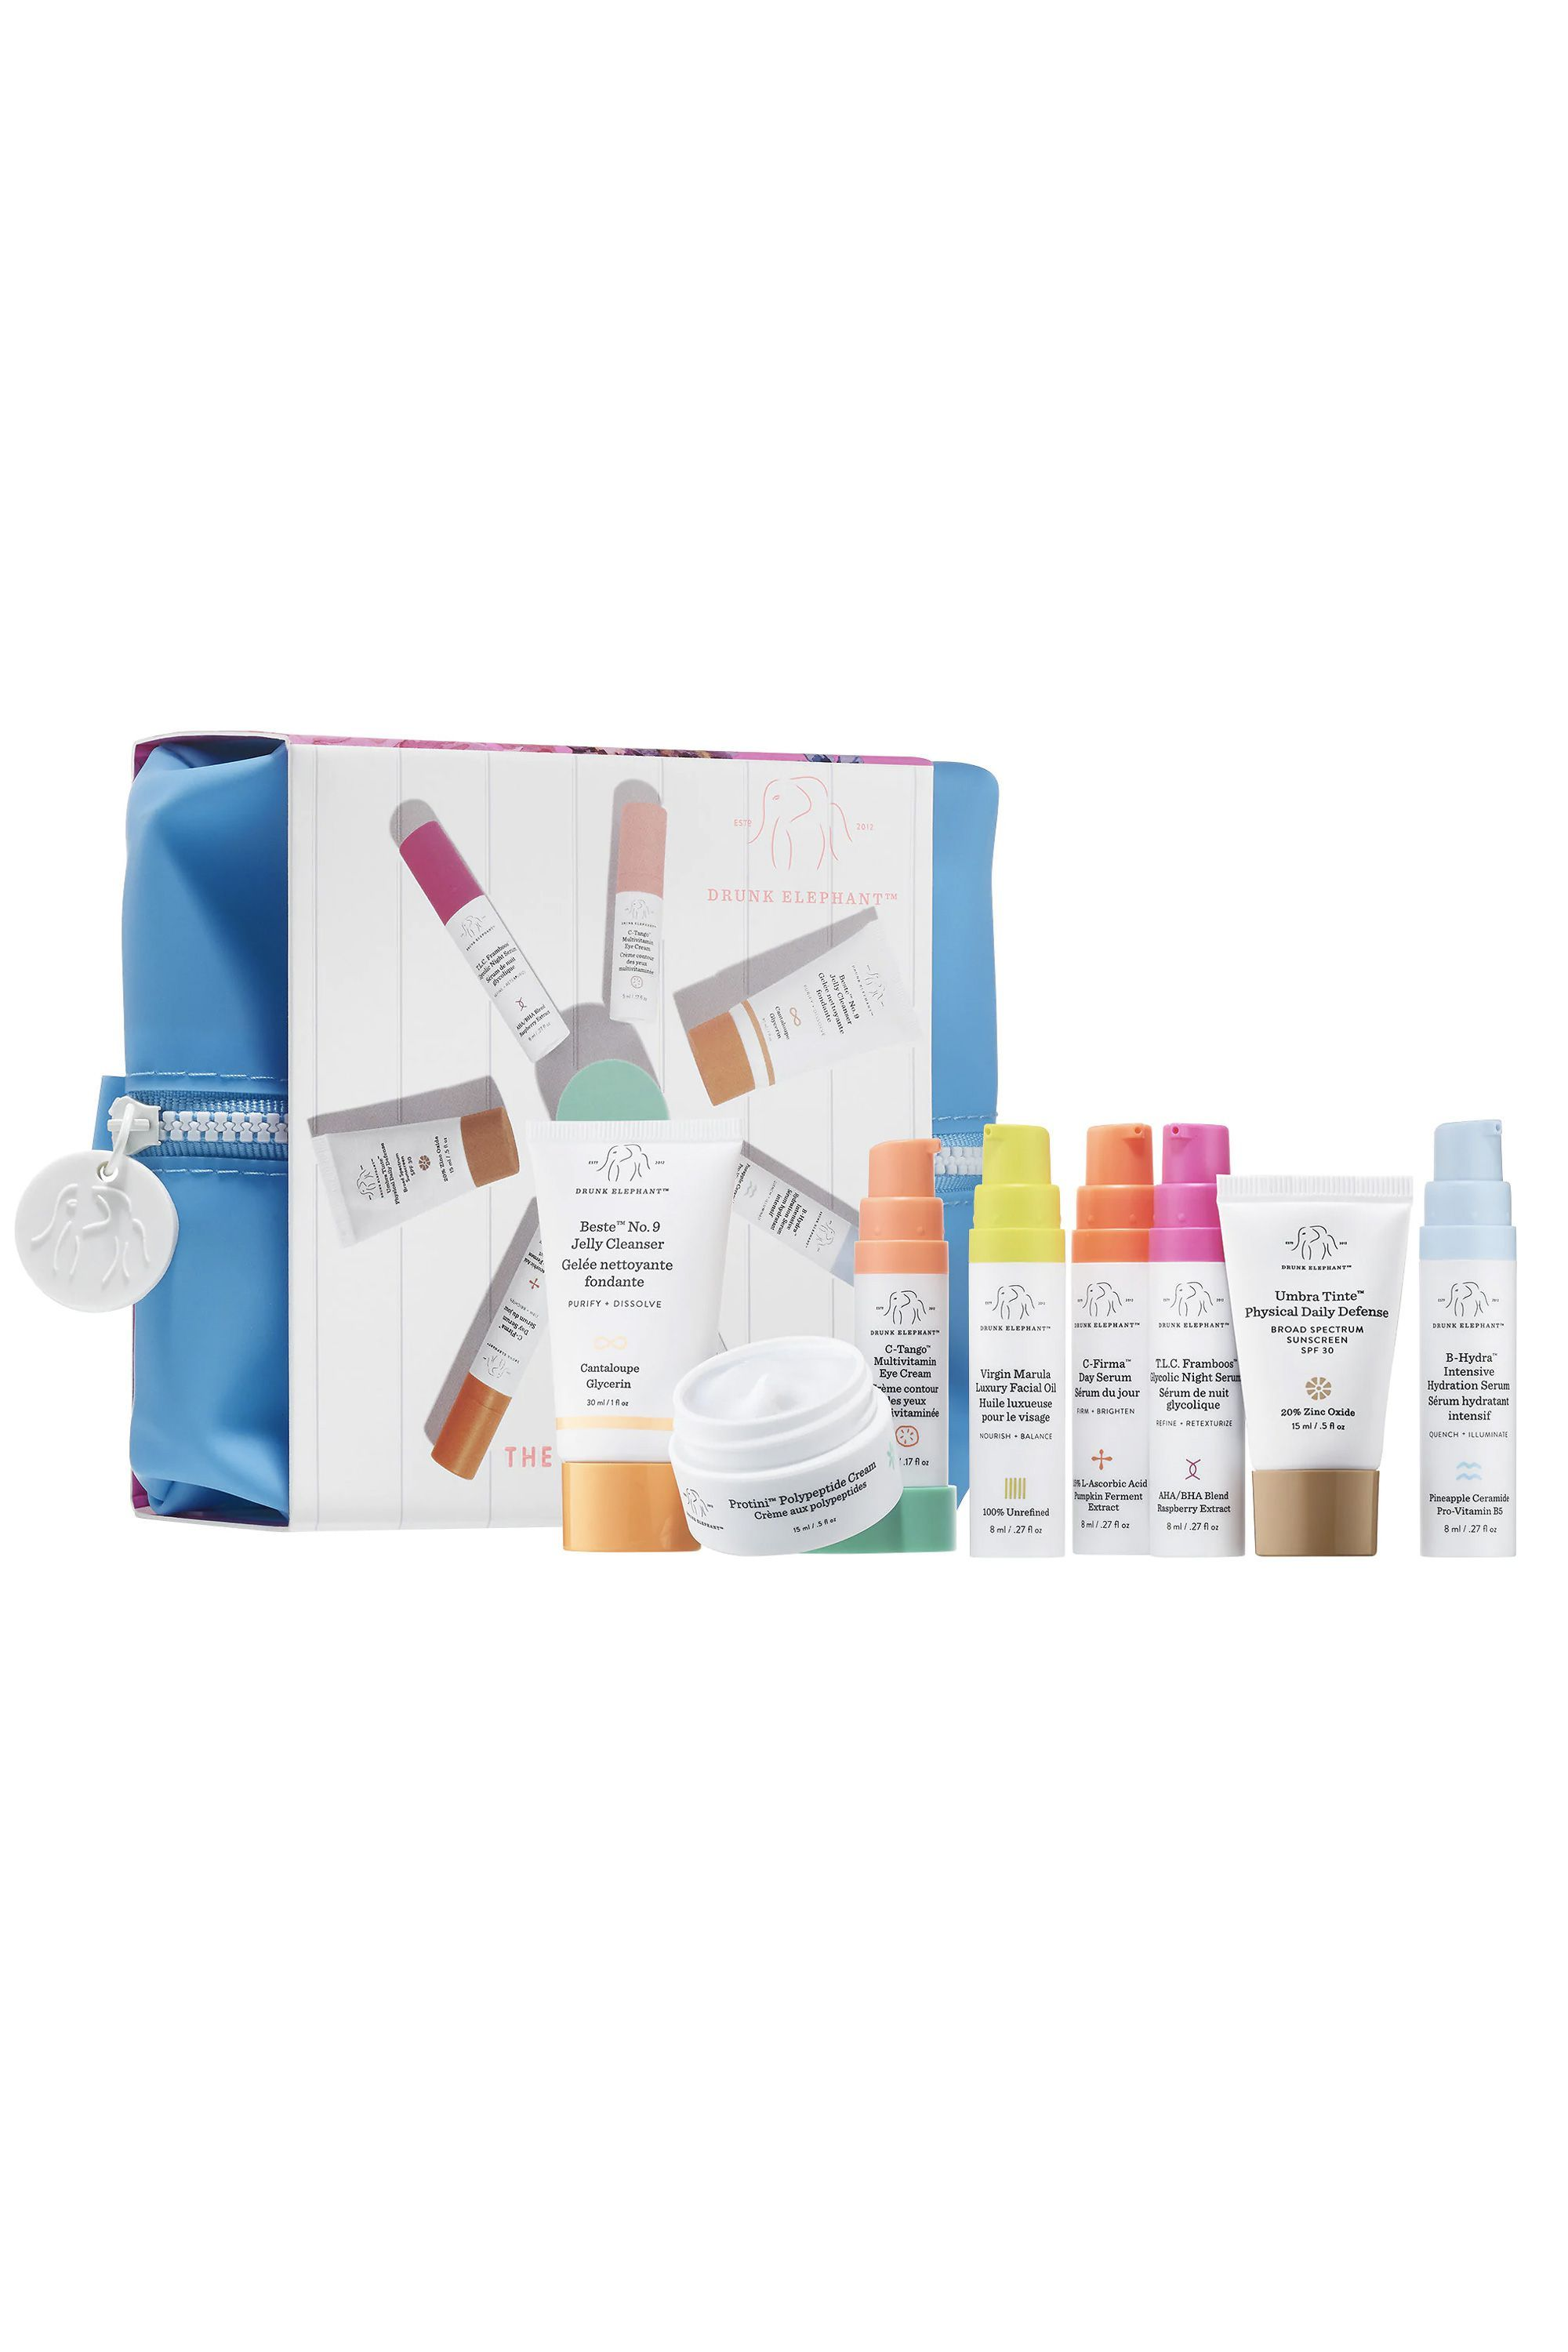 The Littles Drunk Elephant sephora.com $90.00 SHOP NOW This skin kit has all of Drunk Elephant's cult-favorite products for her to test out.